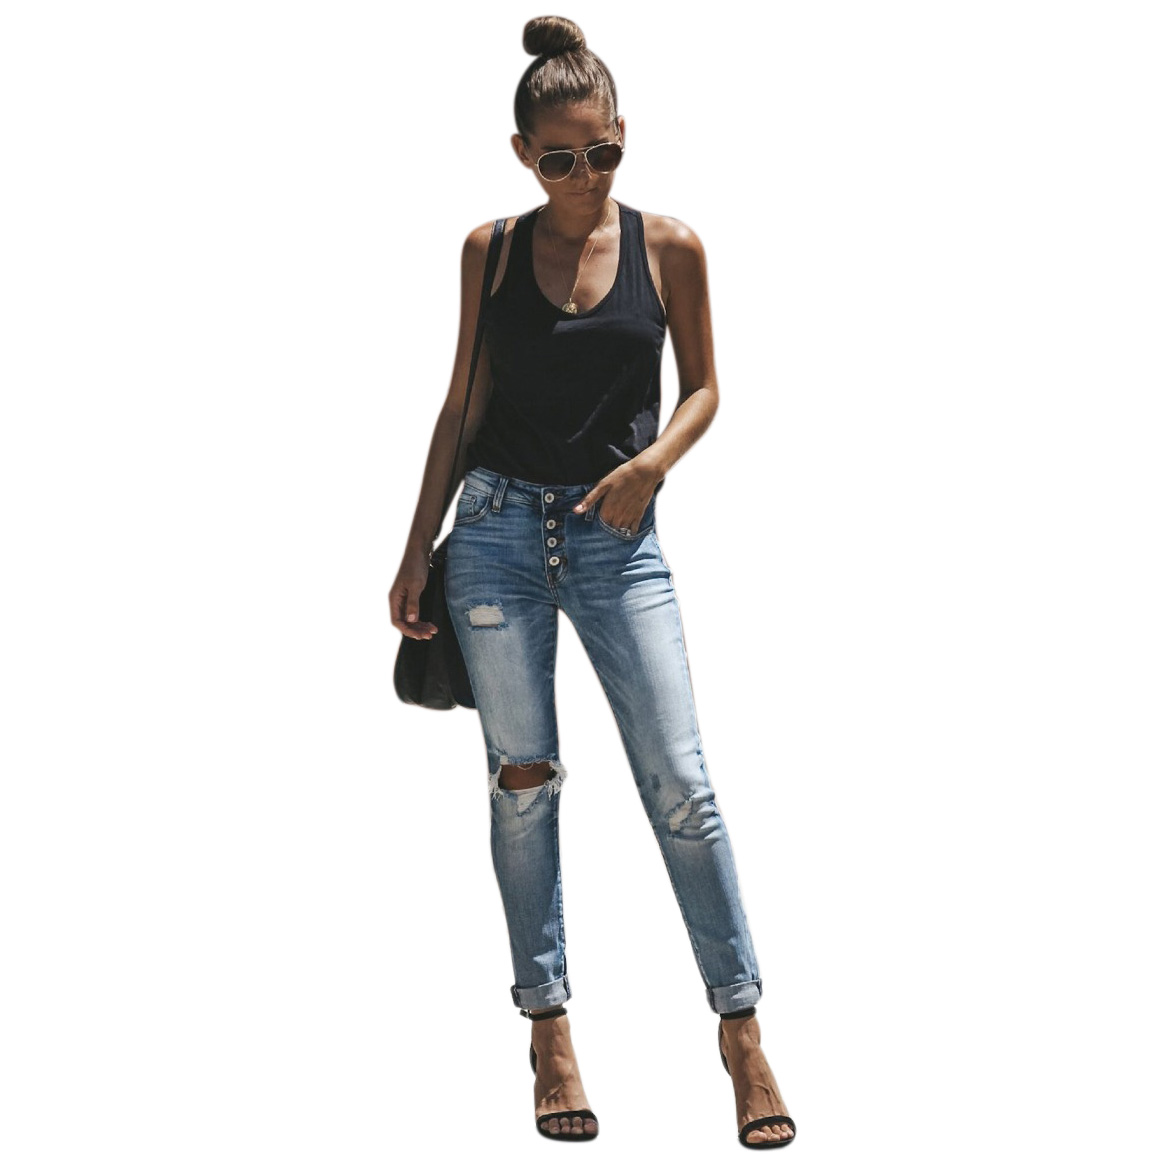 women Denim Hole Ripped Pencil Pants Stretch Jeans High Waist Pants Women High Waist Jeans Light blue in Jeans from Women 39 s Clothing